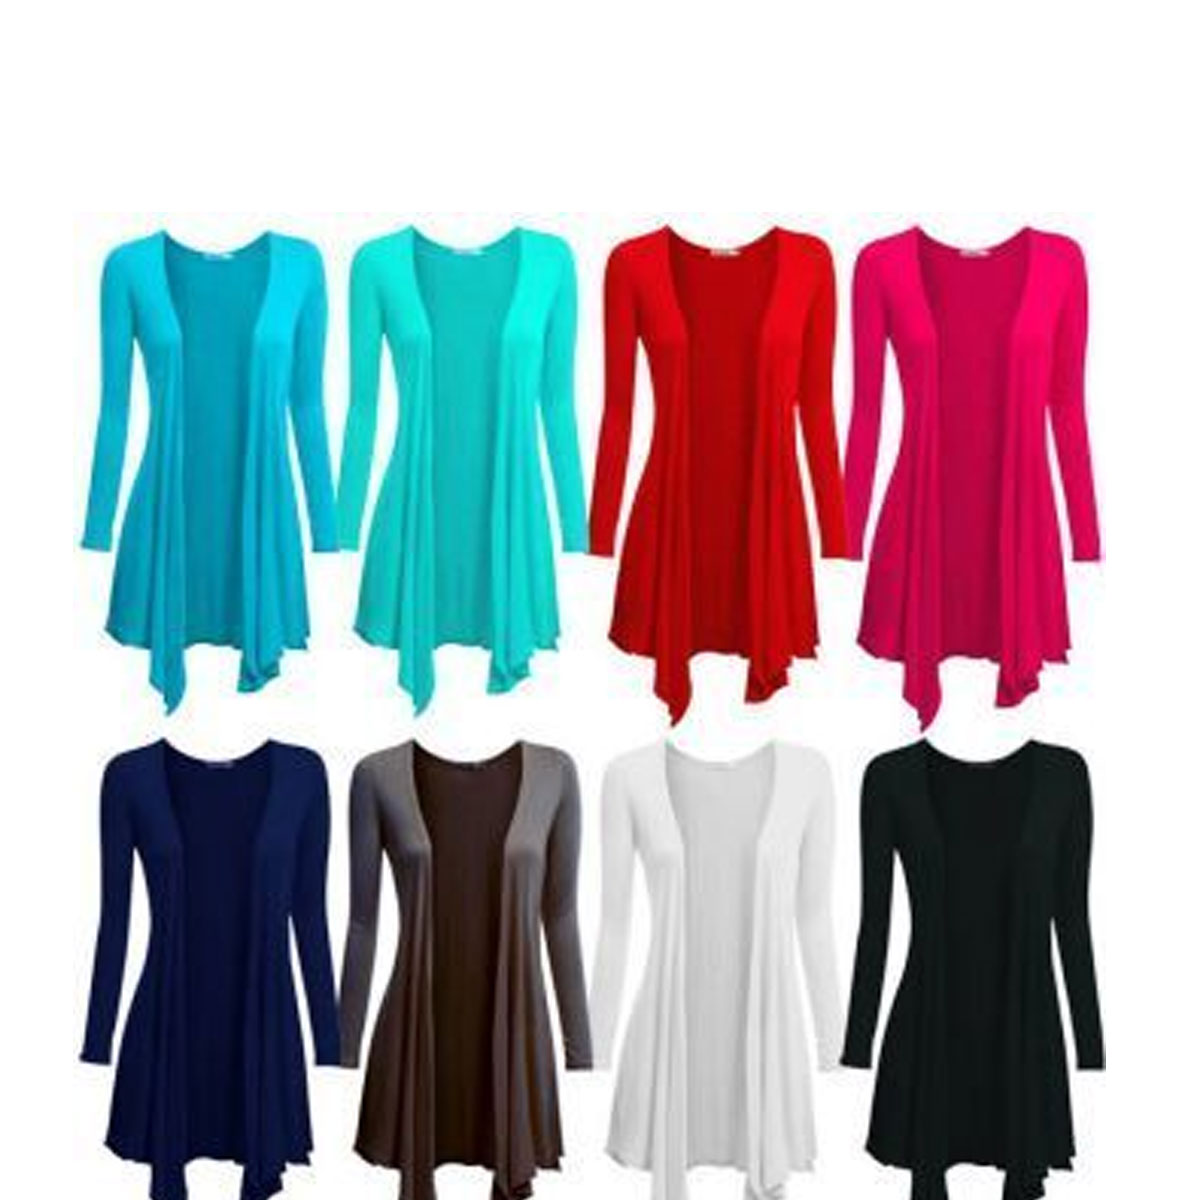 Pack of 5 Women's Jersey Cotton Shrug (Viscose Fabric) Gallery Image 1